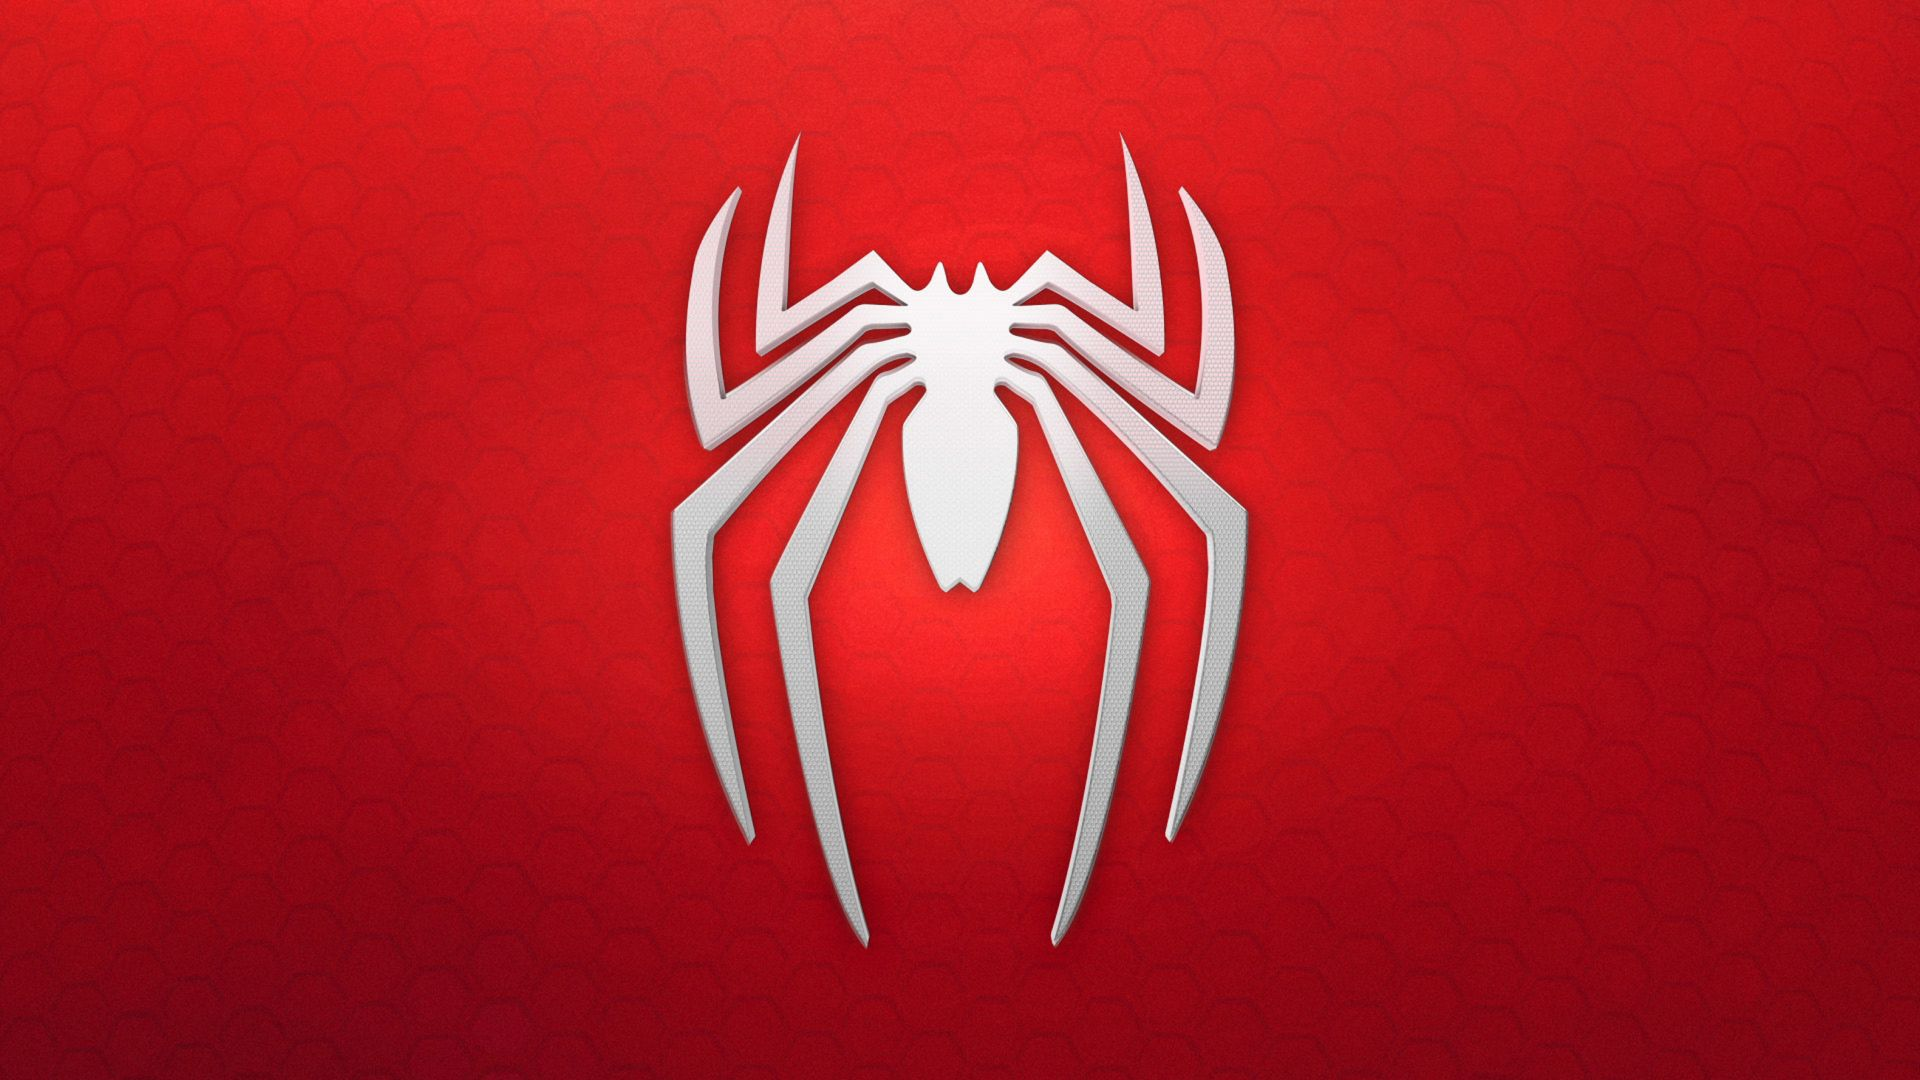 wallpaper spiderman logo background red white games 11596